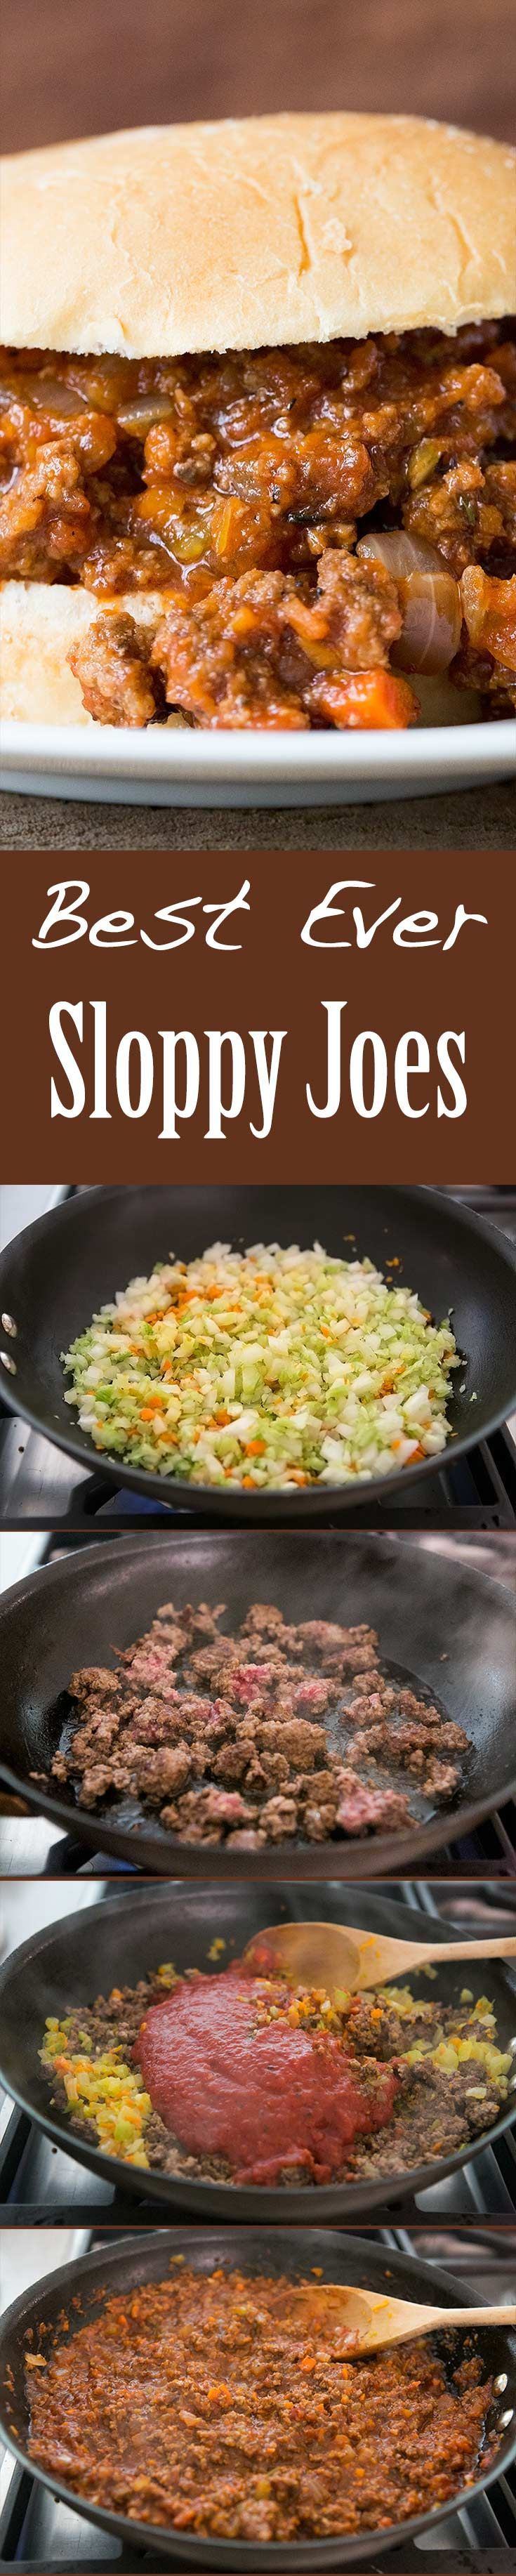 A kid-friendly classic! Sloppy Joes with browned ground beef, onions, garlic, carrots, celery, cooked in sweet sour tomato sauce, served over hamburger buns. On http://SimplyRecipes.com